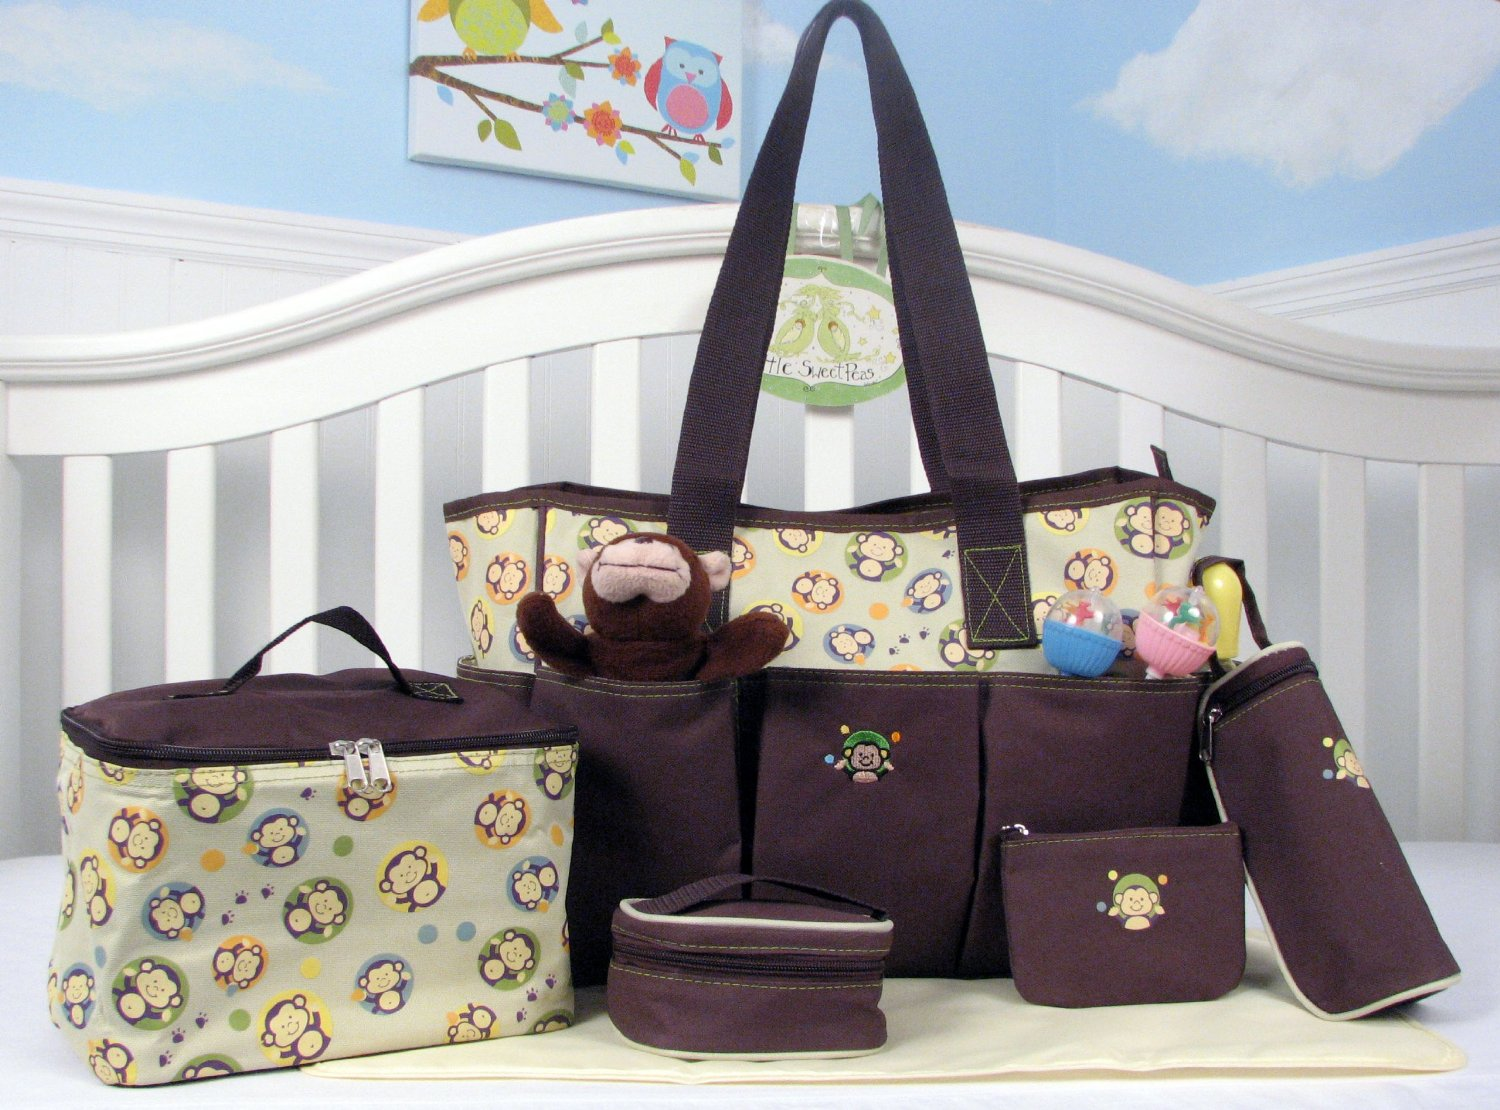 Amazon.com : SOHO Curious Monkey 6 in 1 Deluxe Diaper Bag *Limited time offer* : Diaper Tote Bags